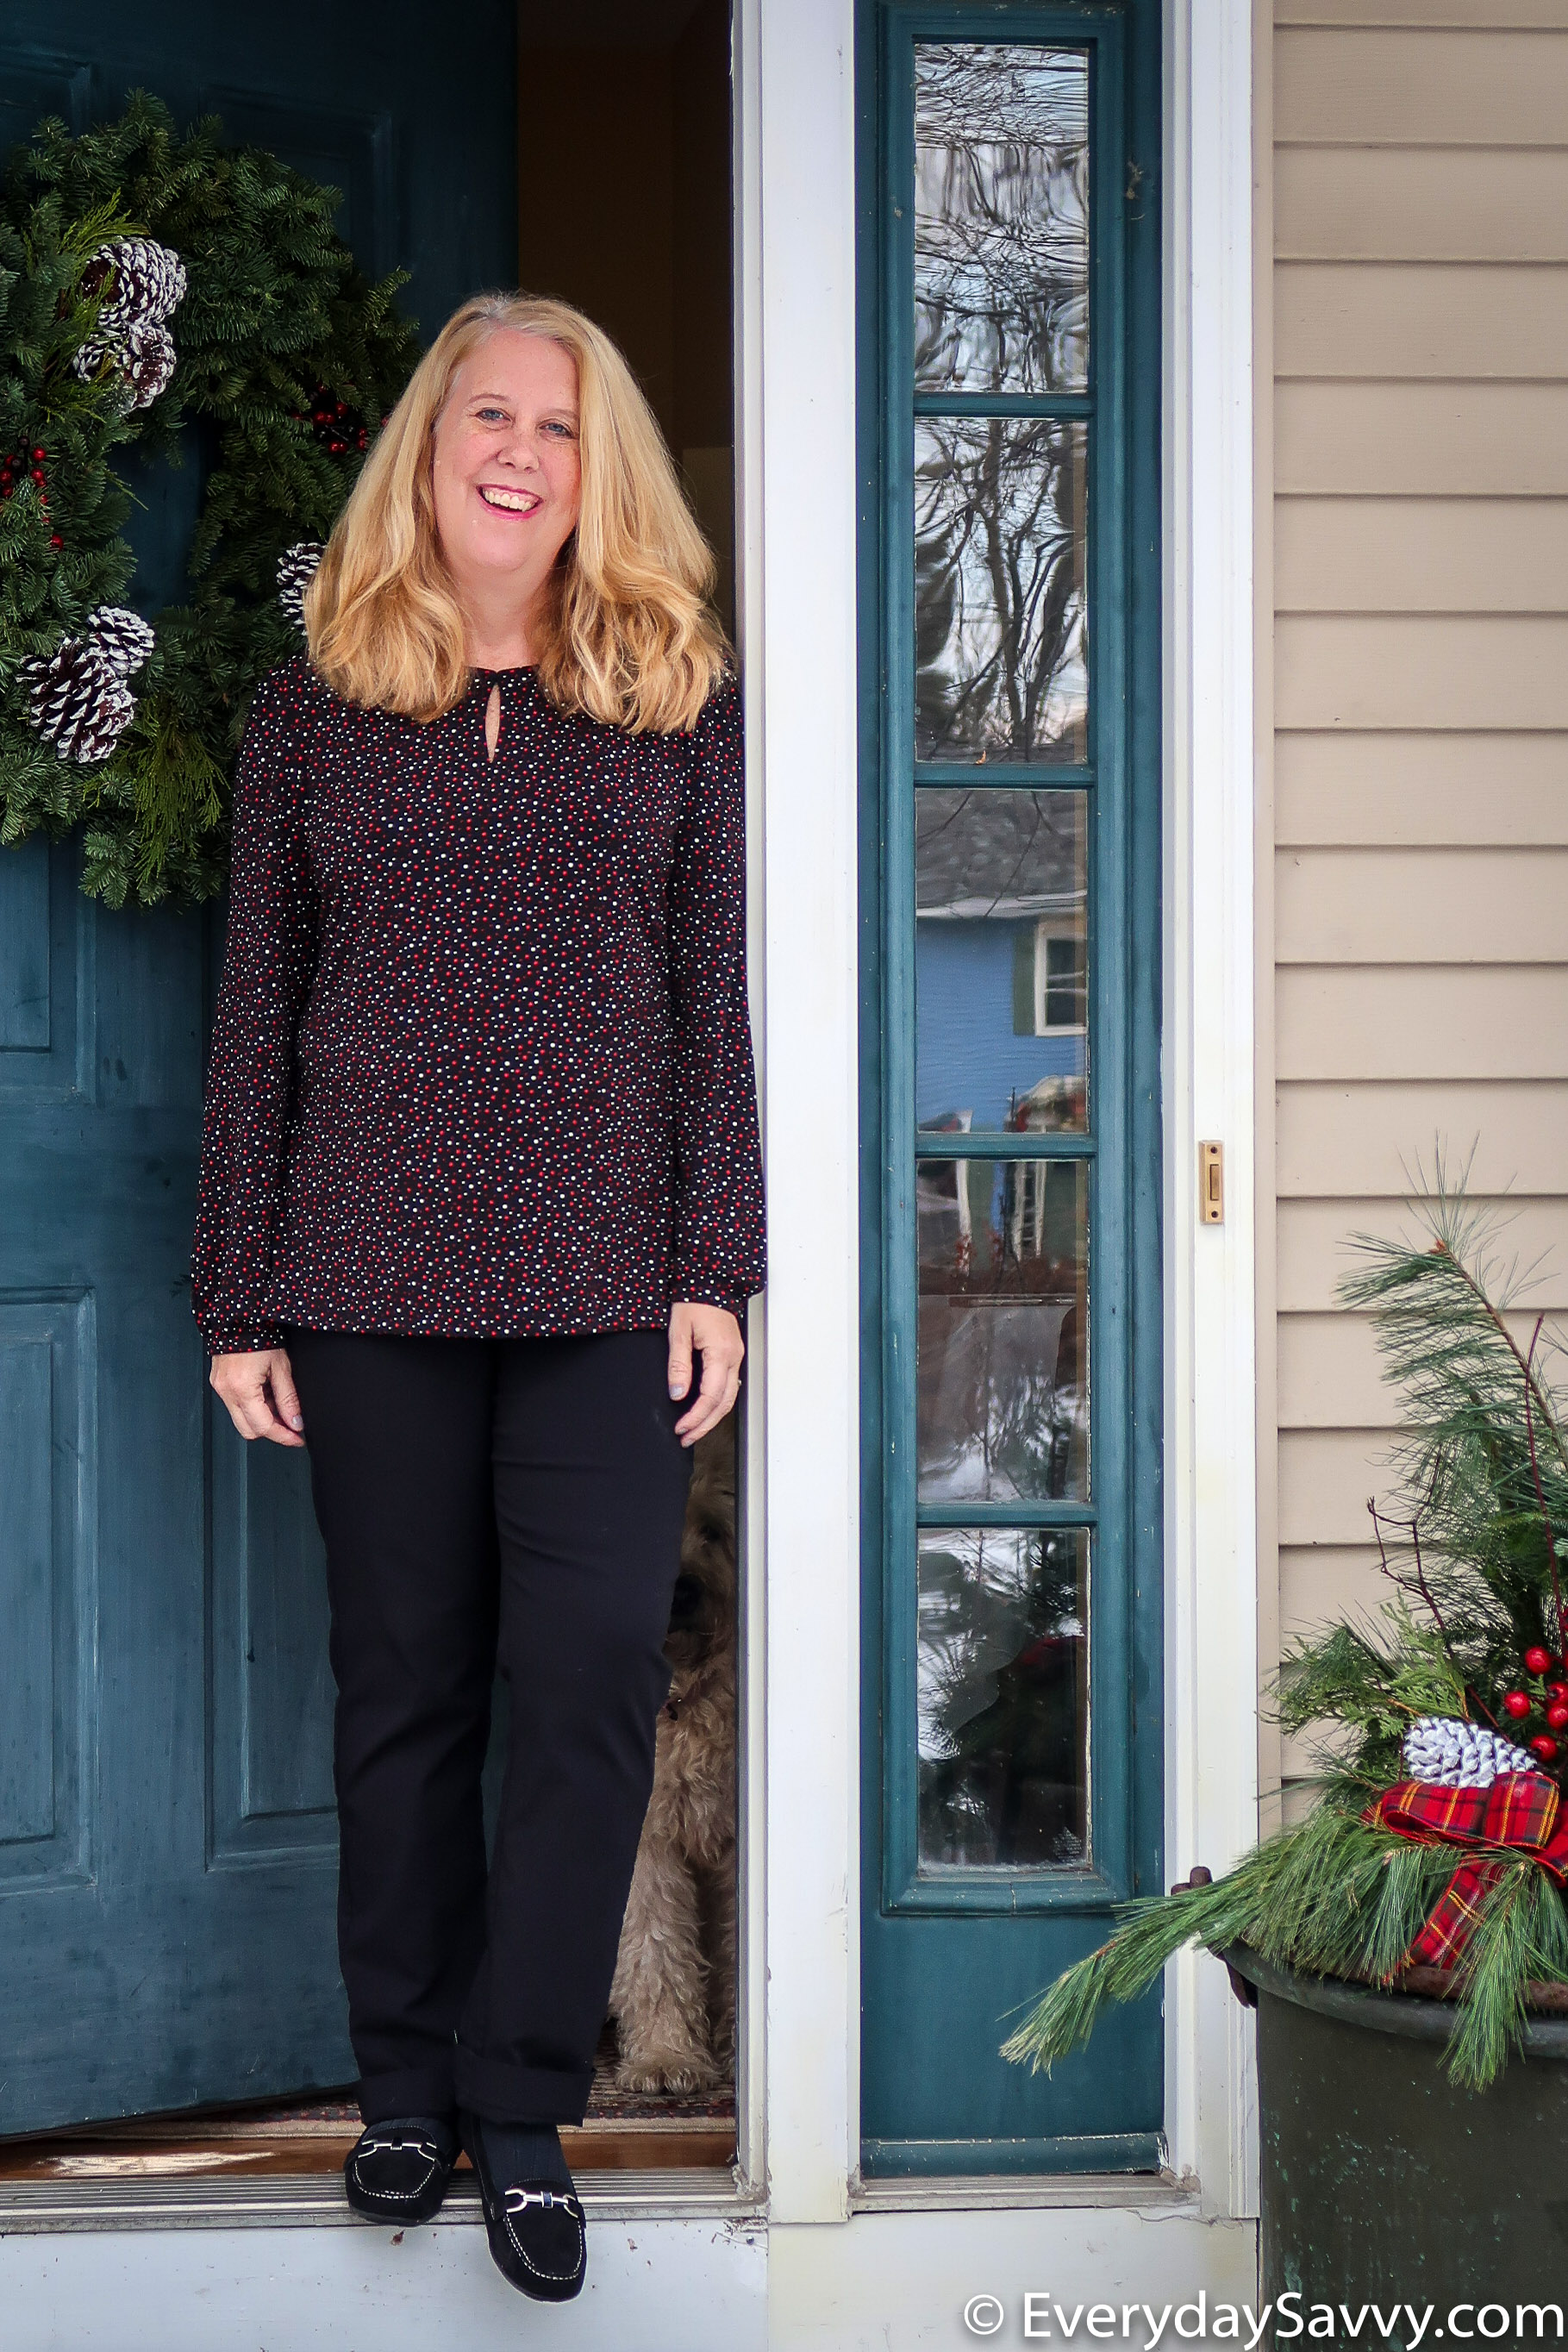 Cute holiday outfit - black printed blouse and black pants with loafers